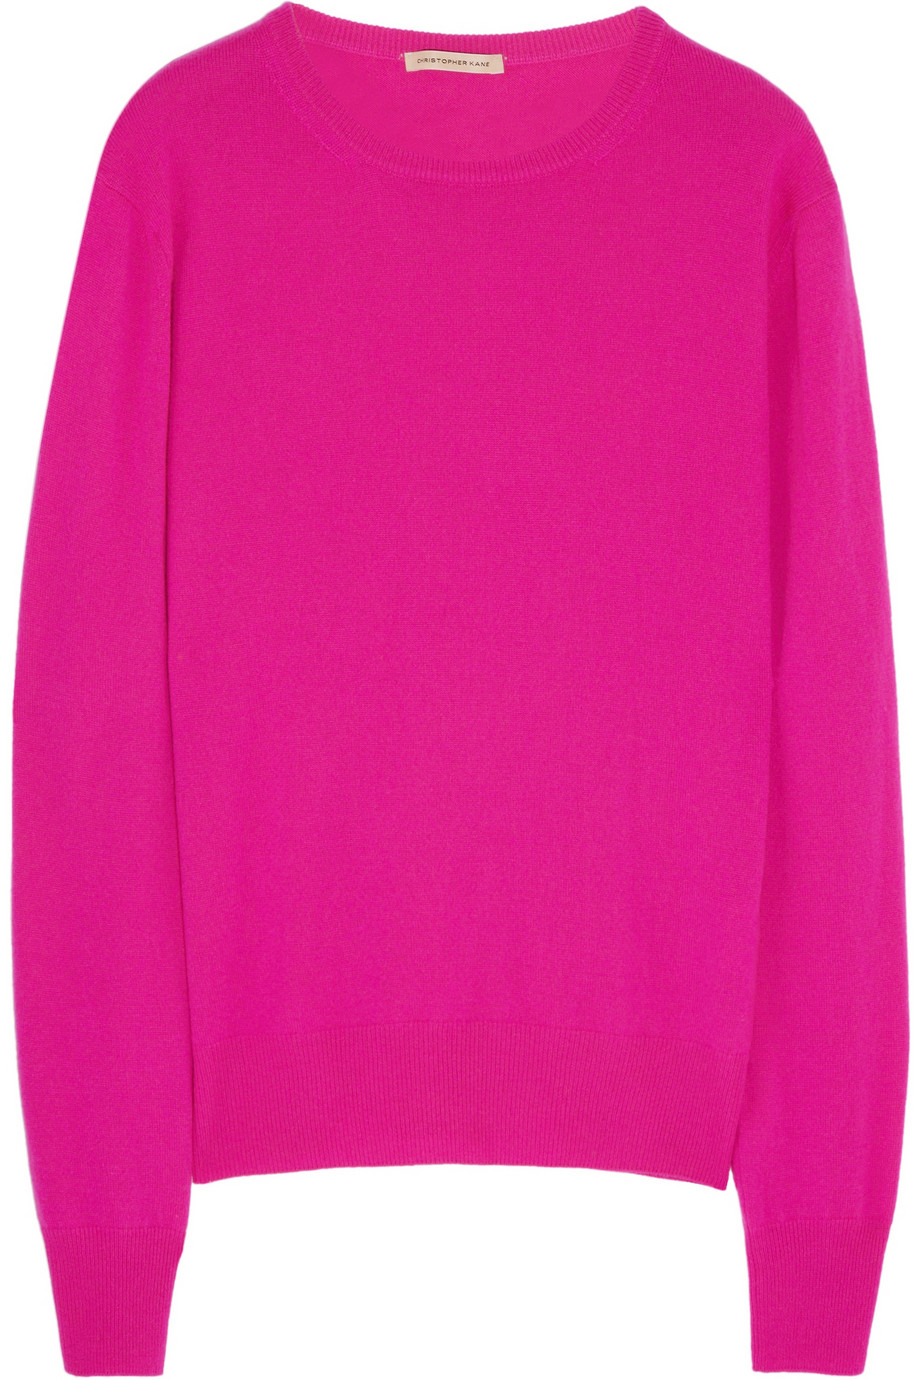 Christopher kane Cashmere Sweater in Pink | Lyst